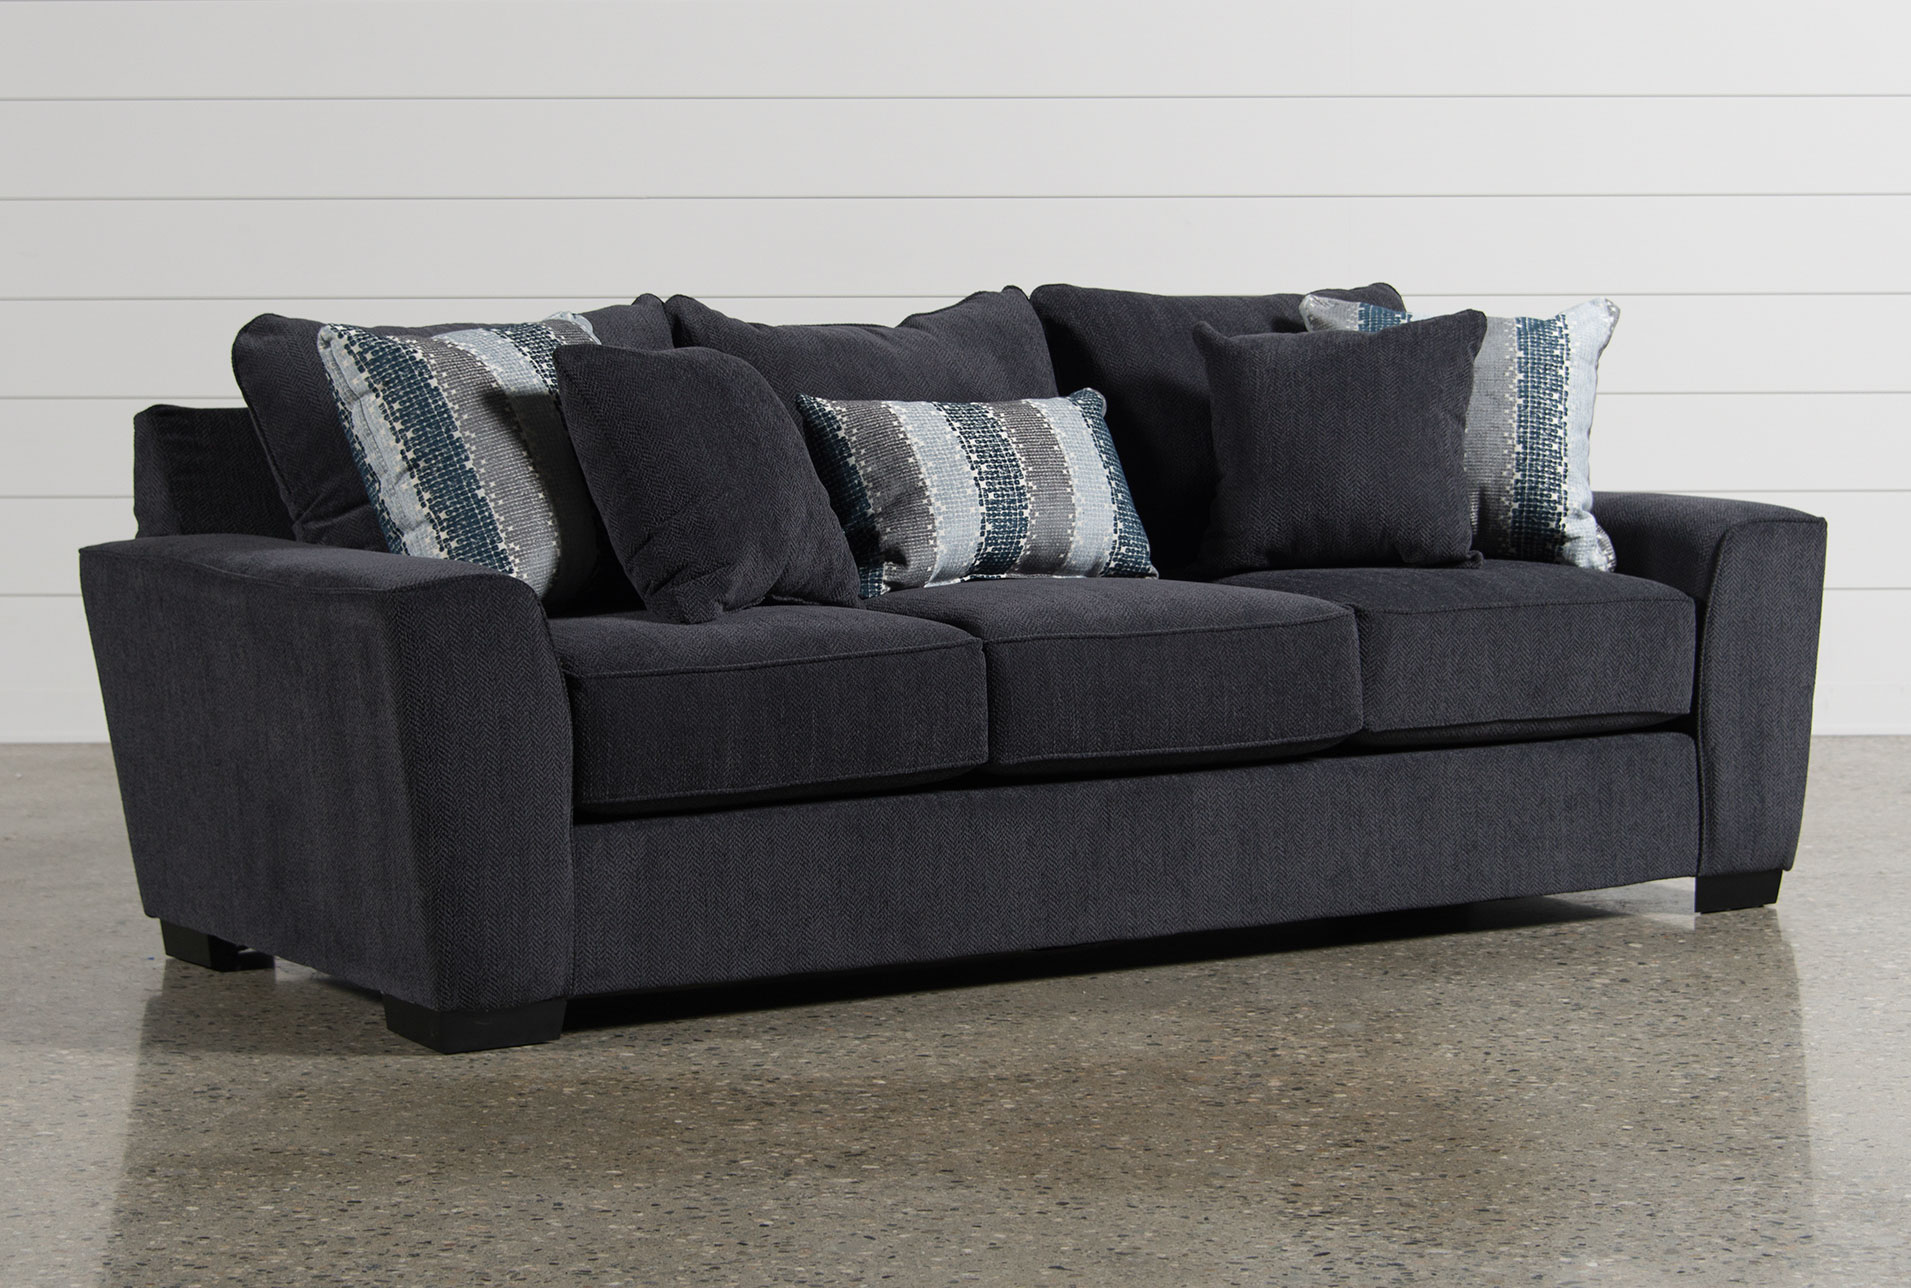 how to clean a fabric couch a step by step guide living spaces rh livingspaces com